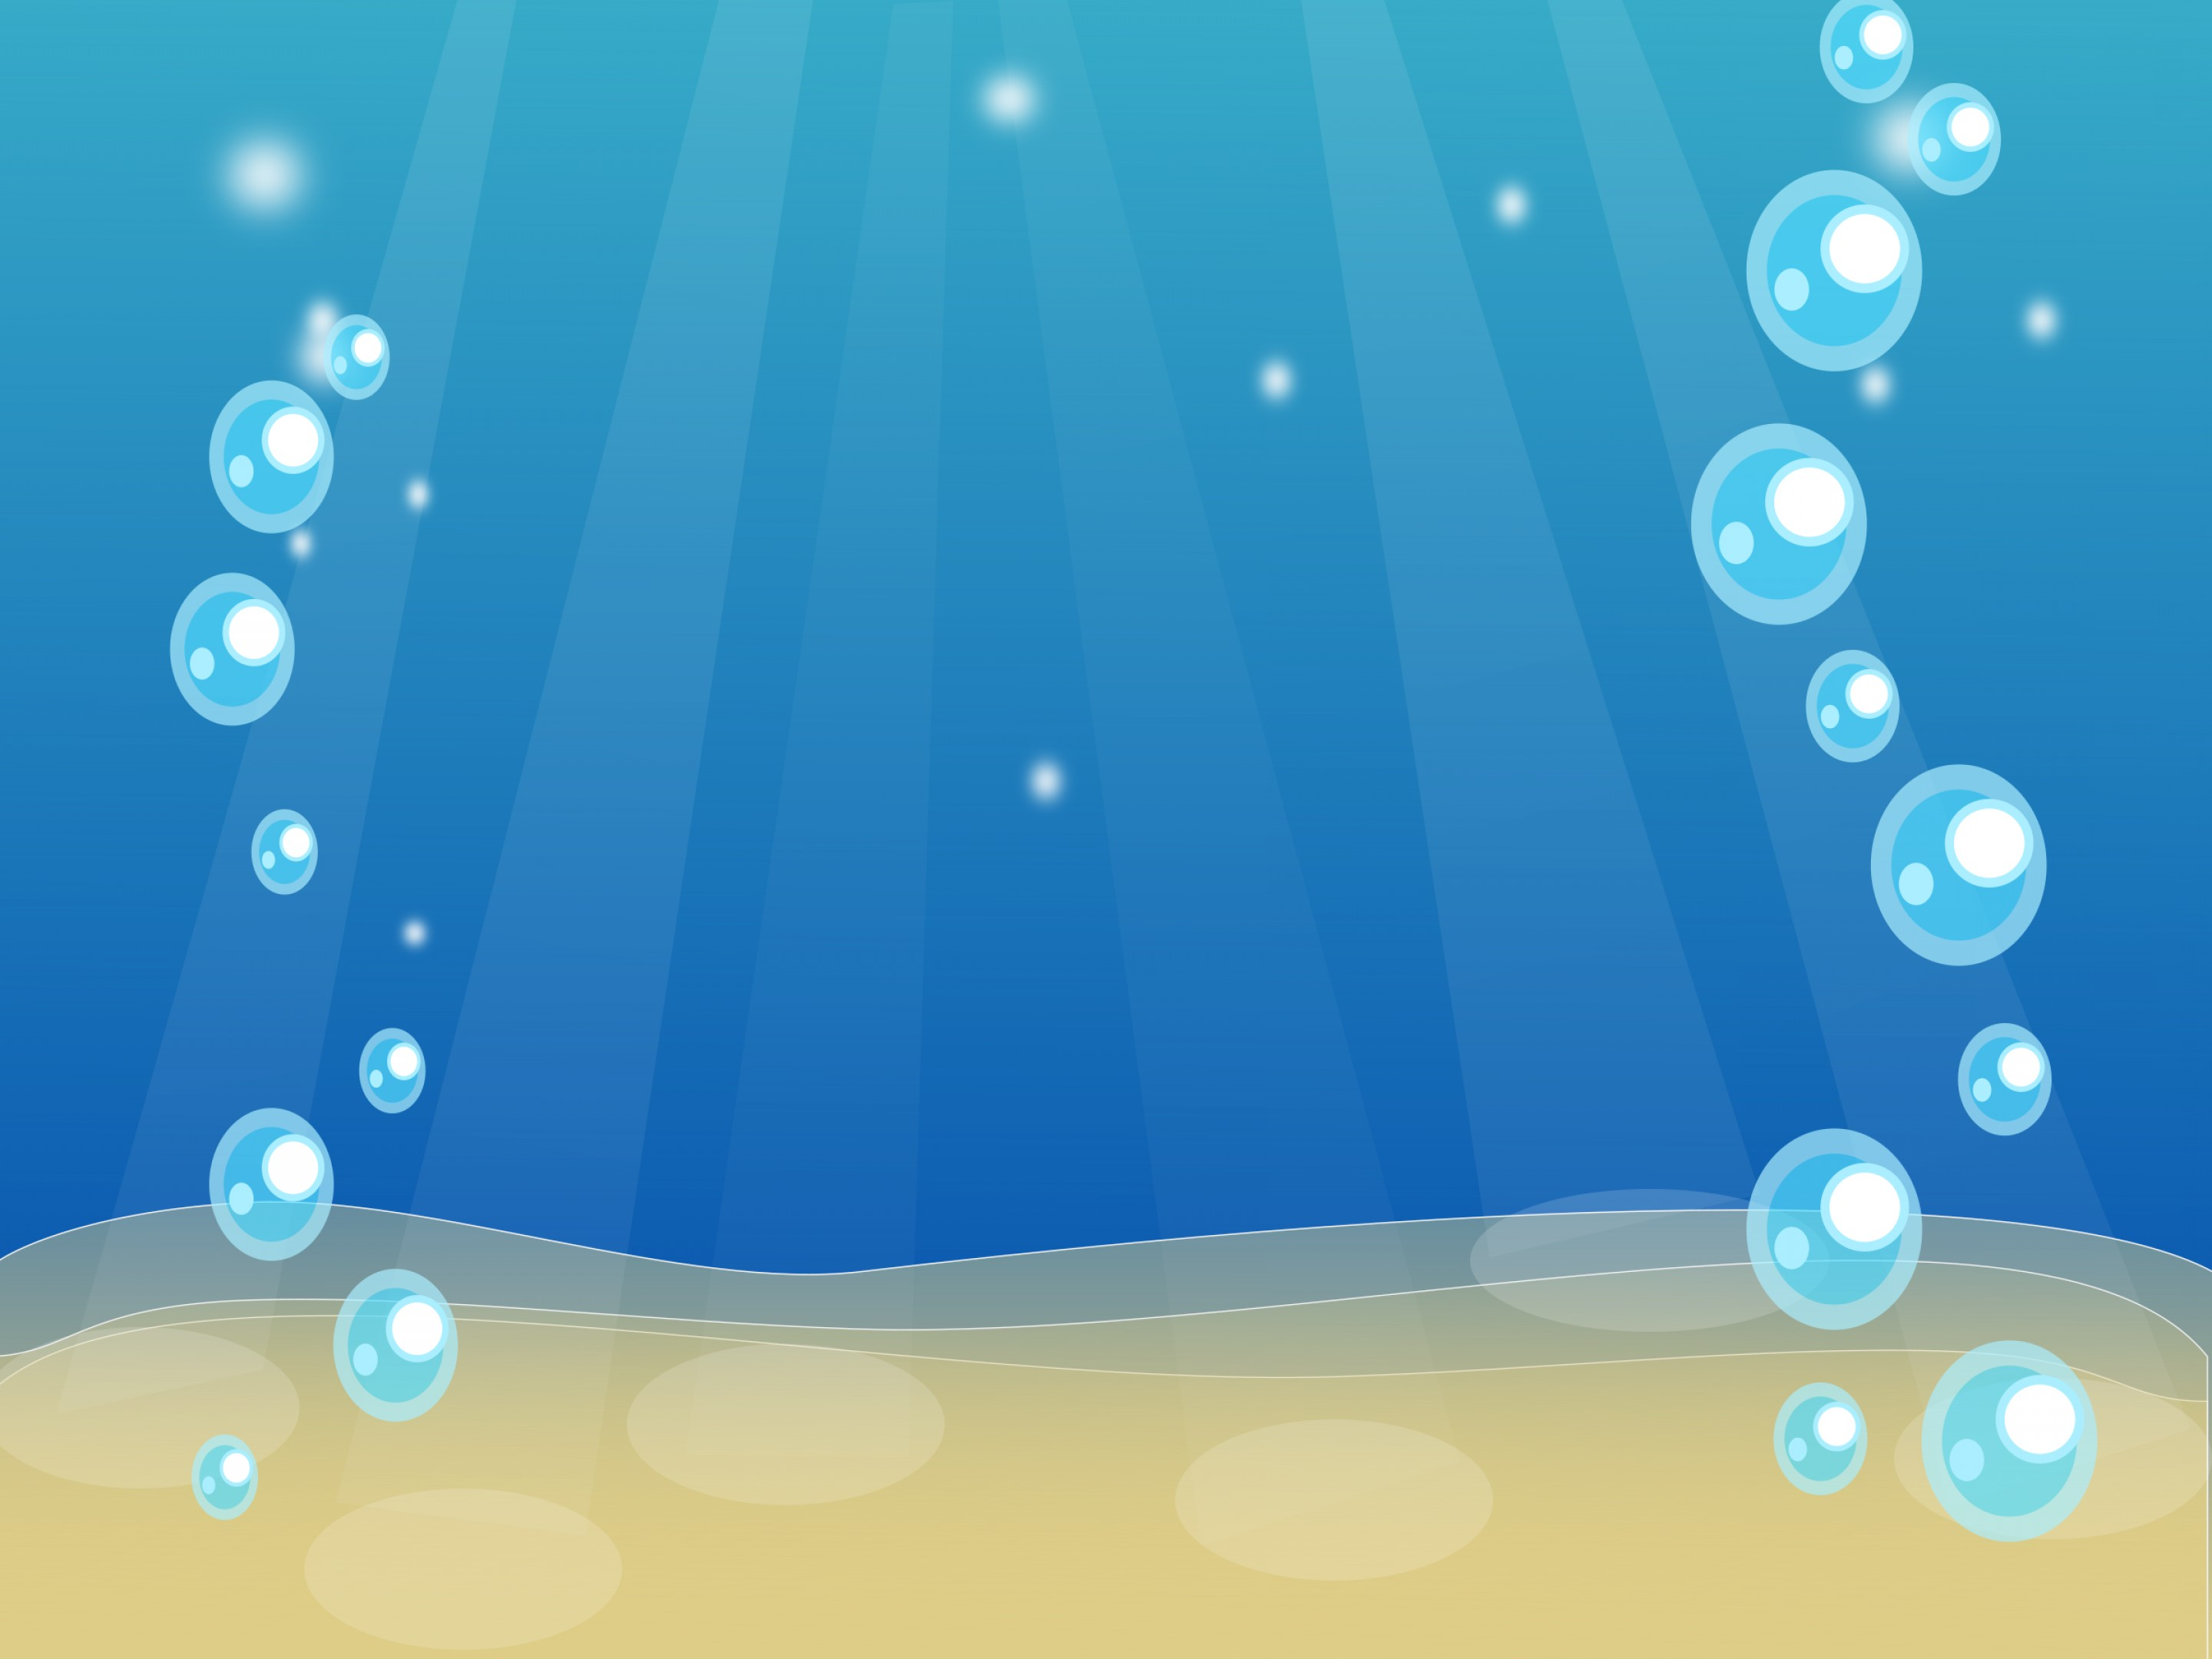 Vector Clip Art Of Water: Bubbles In The Water Vector Clipart